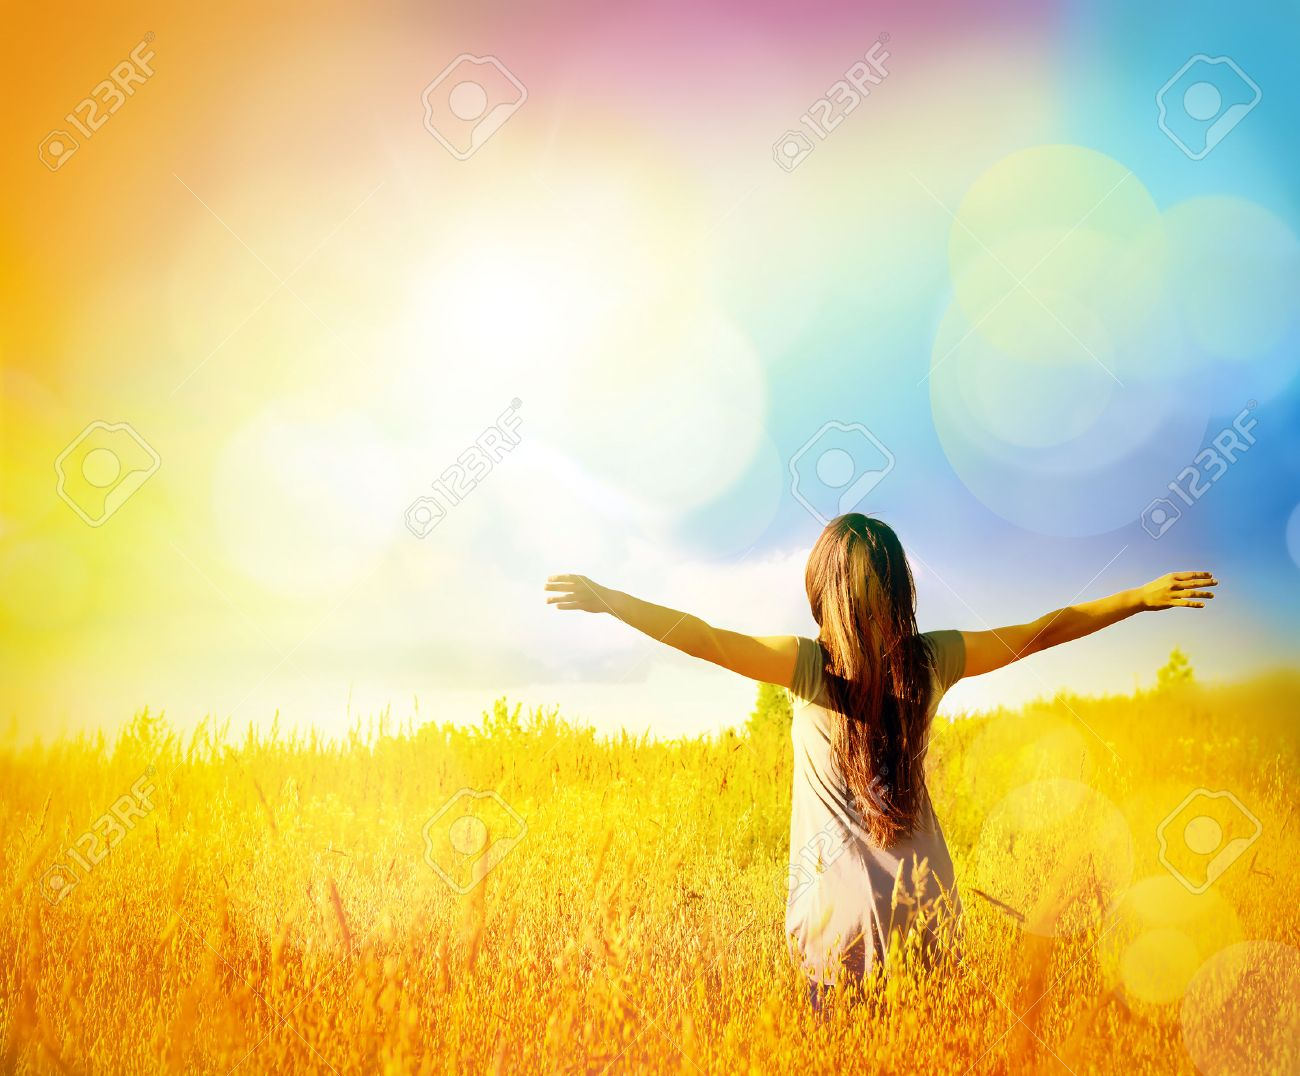 Free Happy Woman Enjoying Nature And Freedom Beauty Girl Outdoor Stock Photo Picture And Royalty Free Image Image 42034577